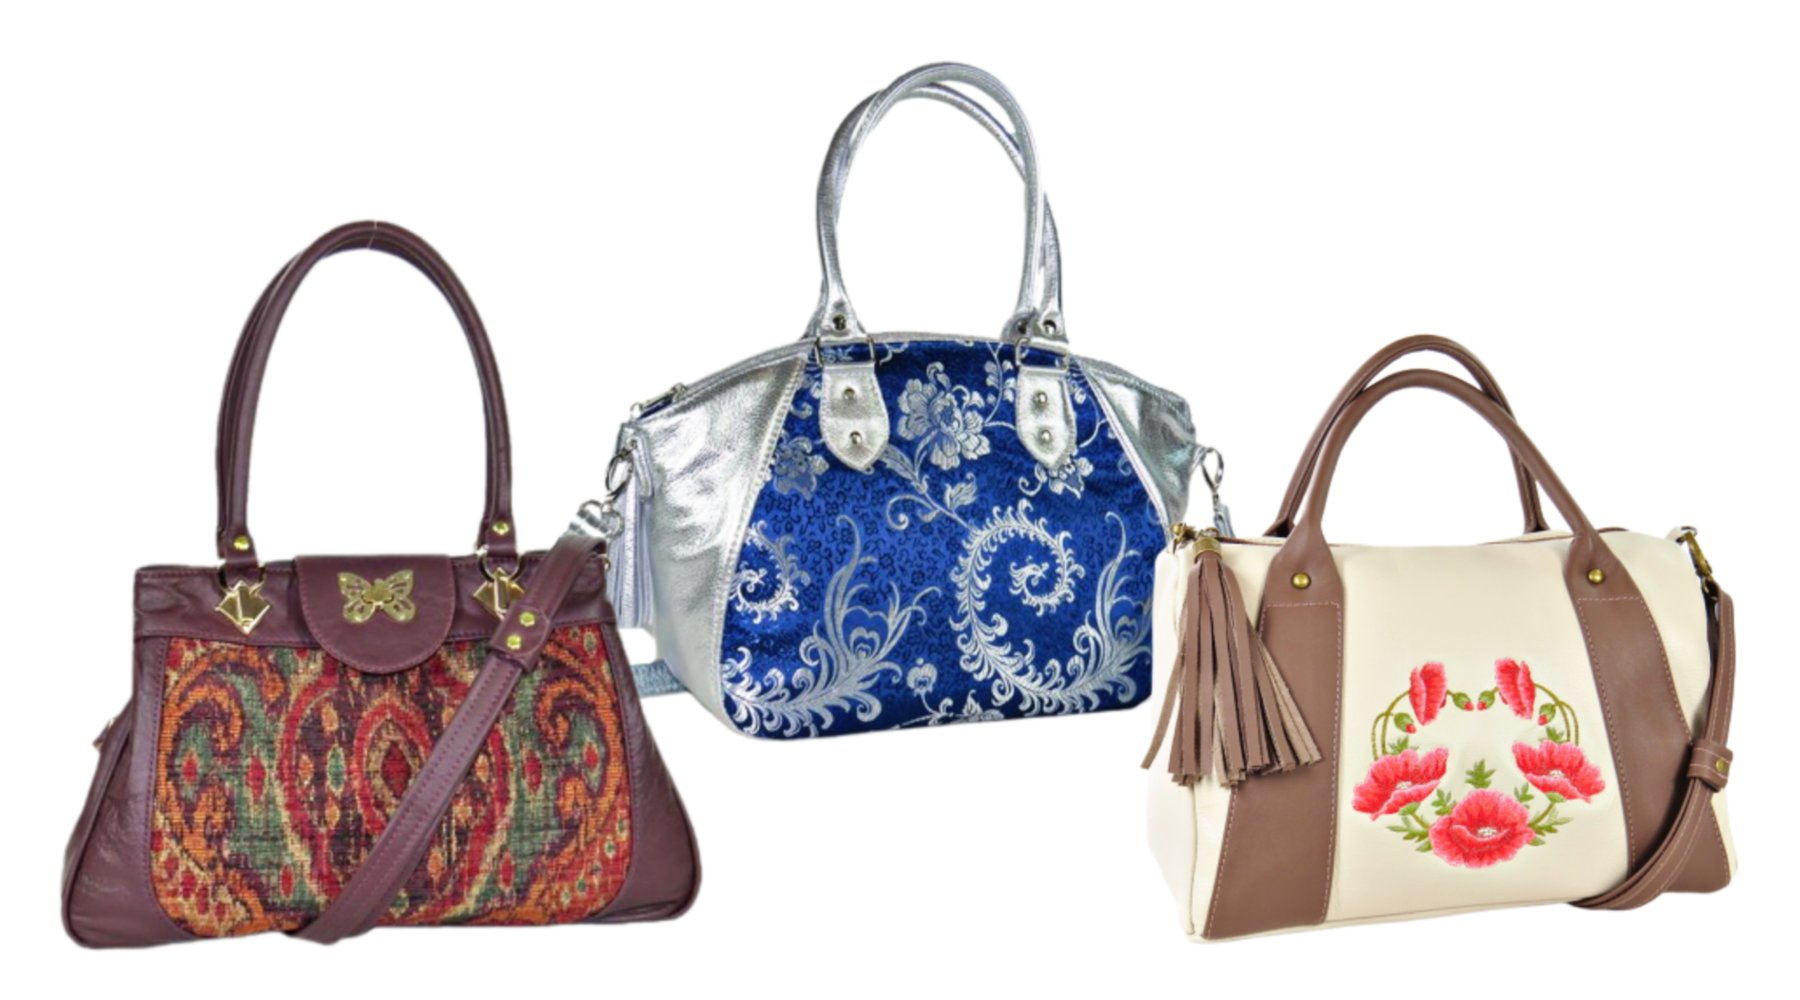 Handmade Leather and Tapestry Satchels Made in the USA